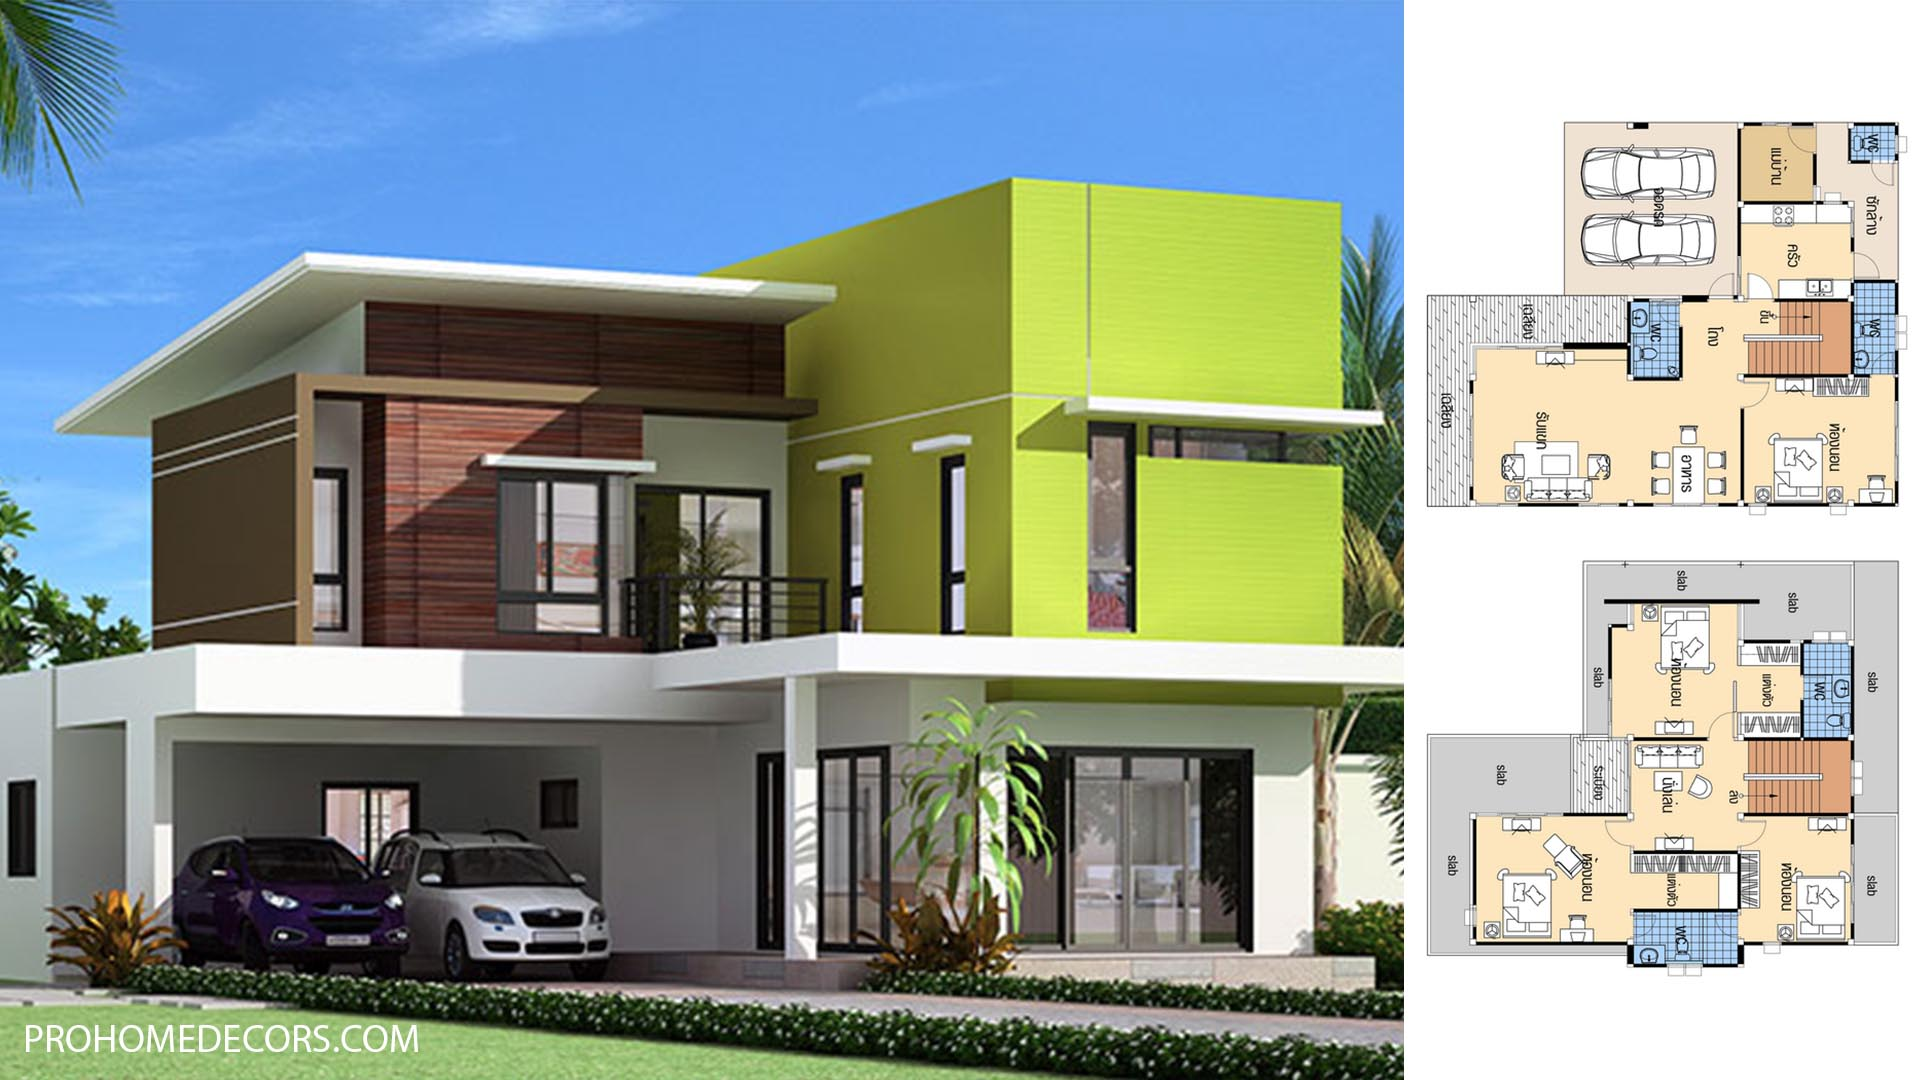 House plans 12×13.5 with 4 Beds